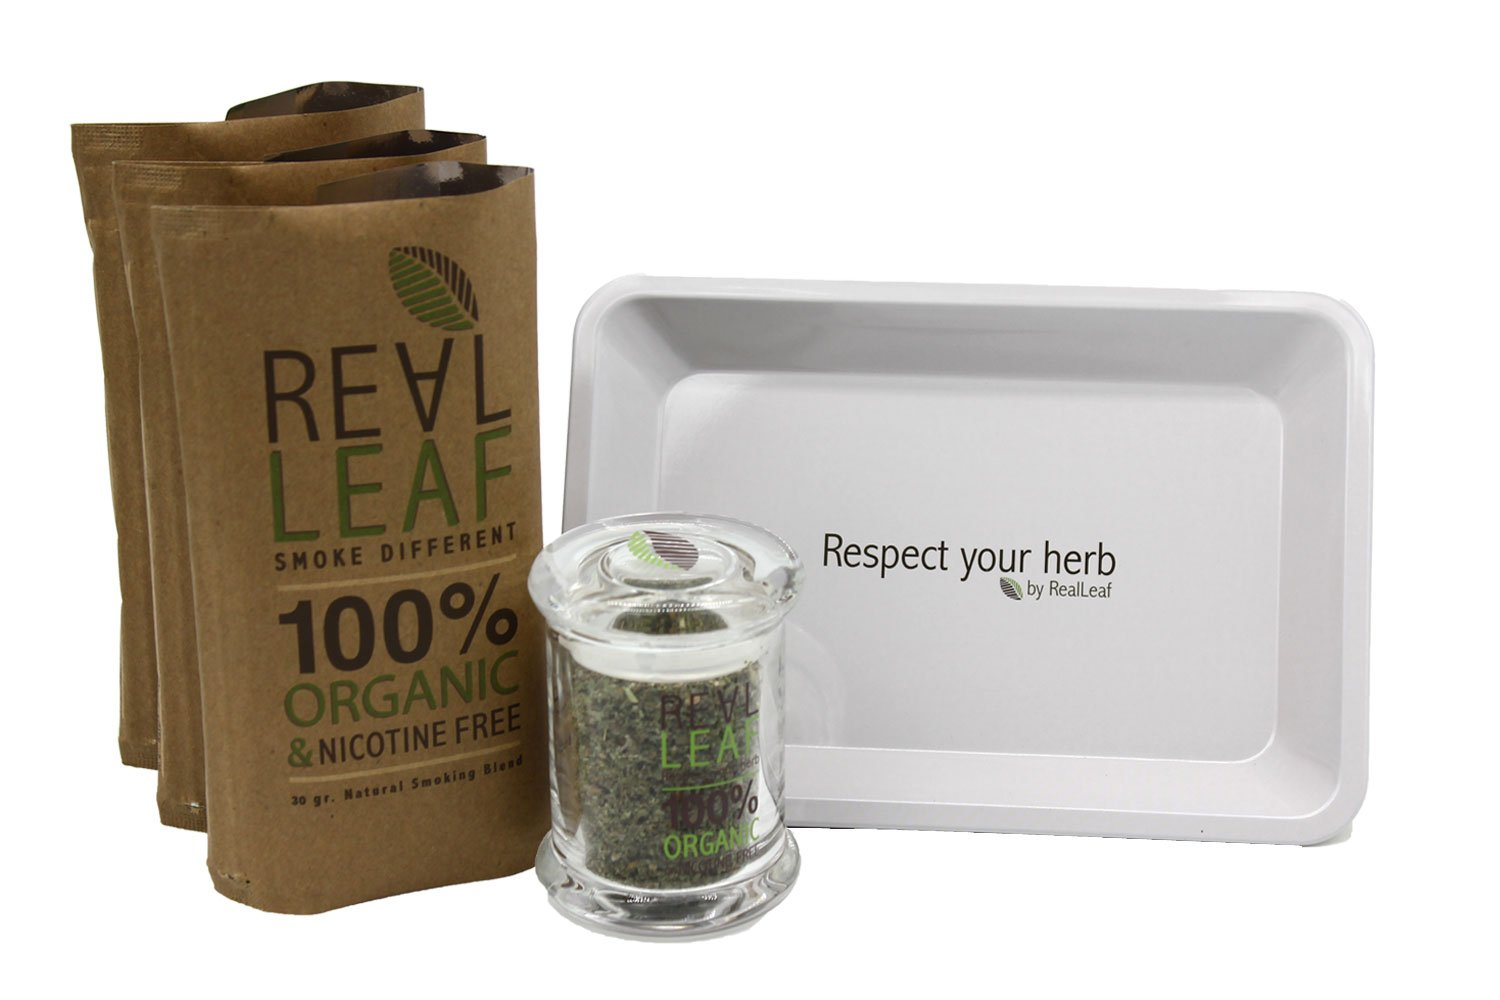 3 x Pack Real Leaf organic smoking mixture tobacco substitute 100% nicotine free + 3gr strong hermetic seal glass herb jar container + stylish tray